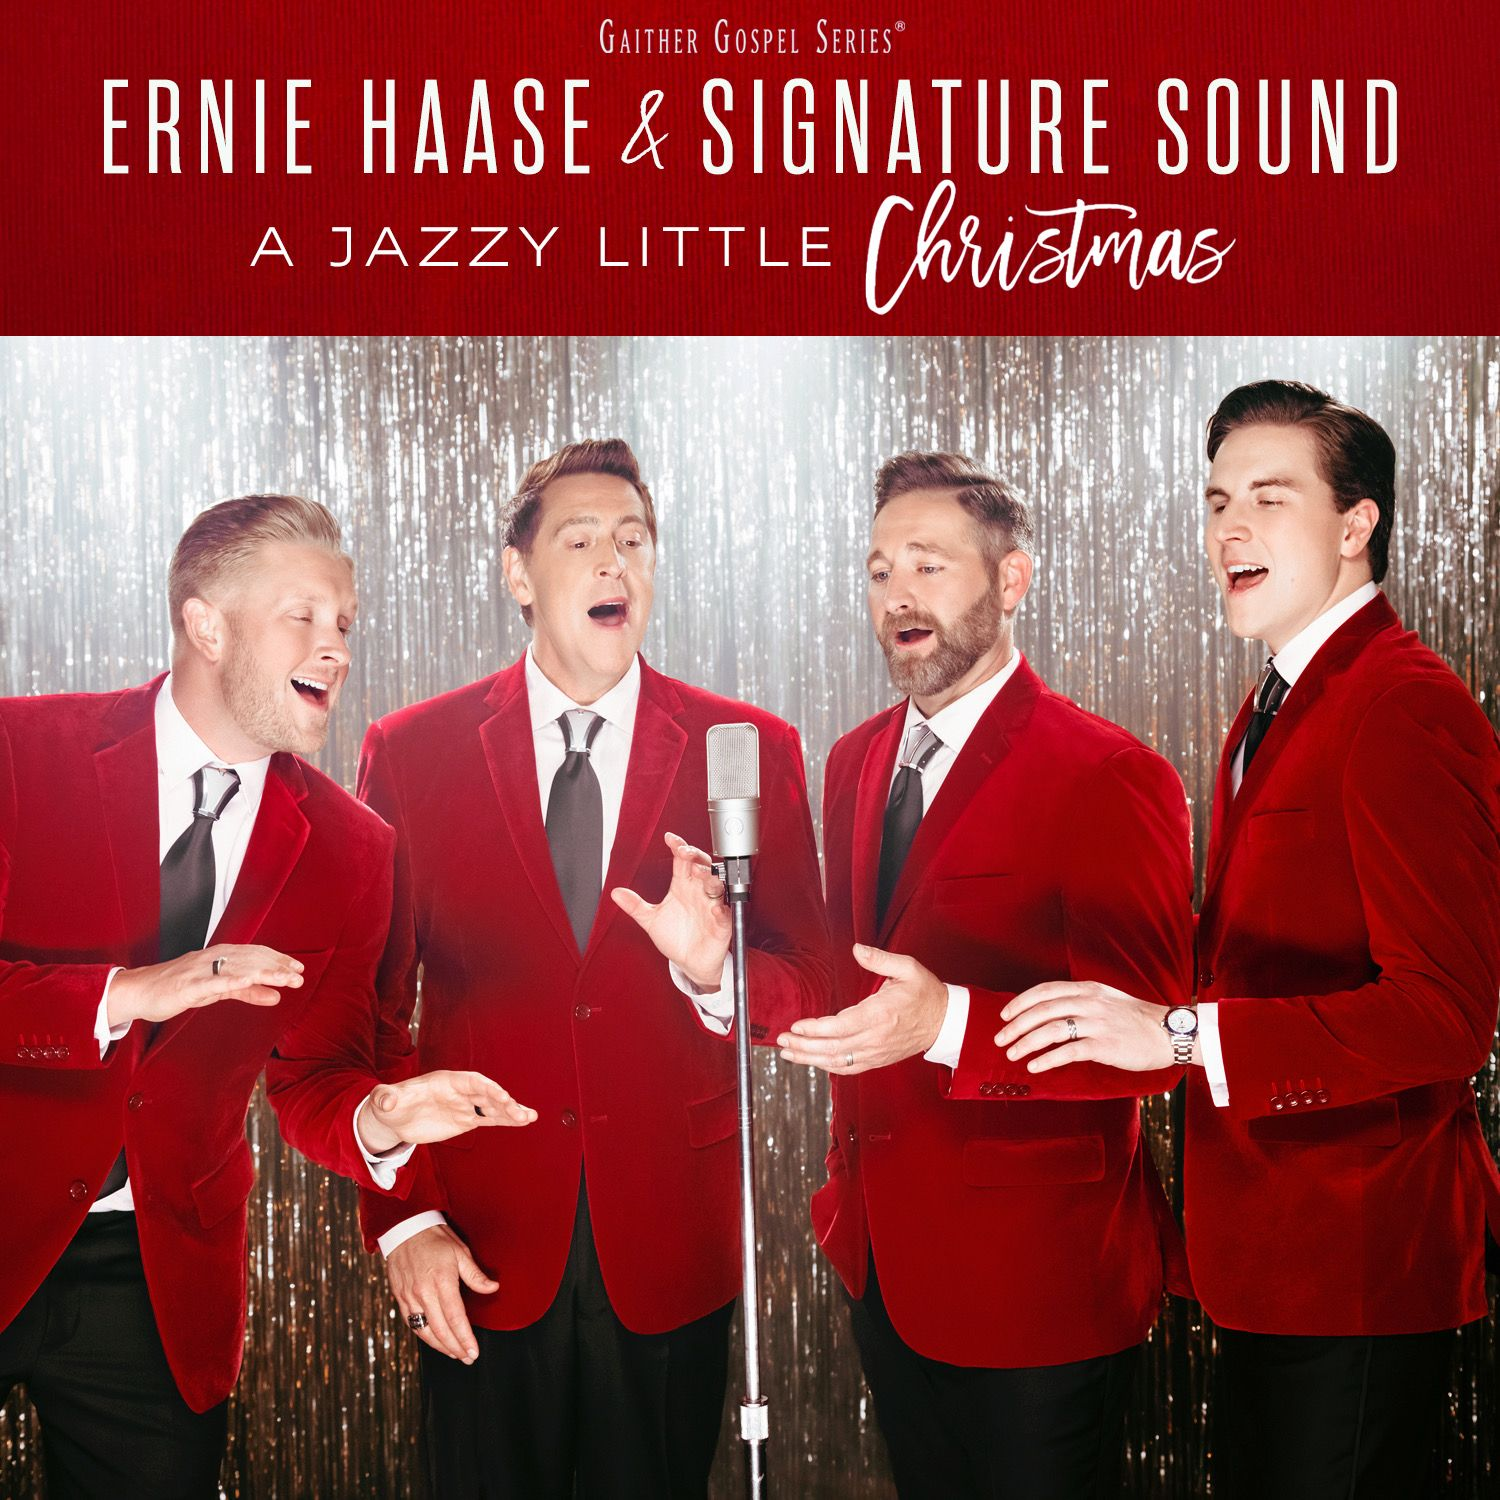 ERNIE HAASE + SIGNATURE SOUNDS A JAZZY LITTLE CHRISTMAS DEBUTS AT NO. 1 ON SOUNDSCAN CHARTS AND TOP 10 ON BILLBOARD JAZZ CHARTS